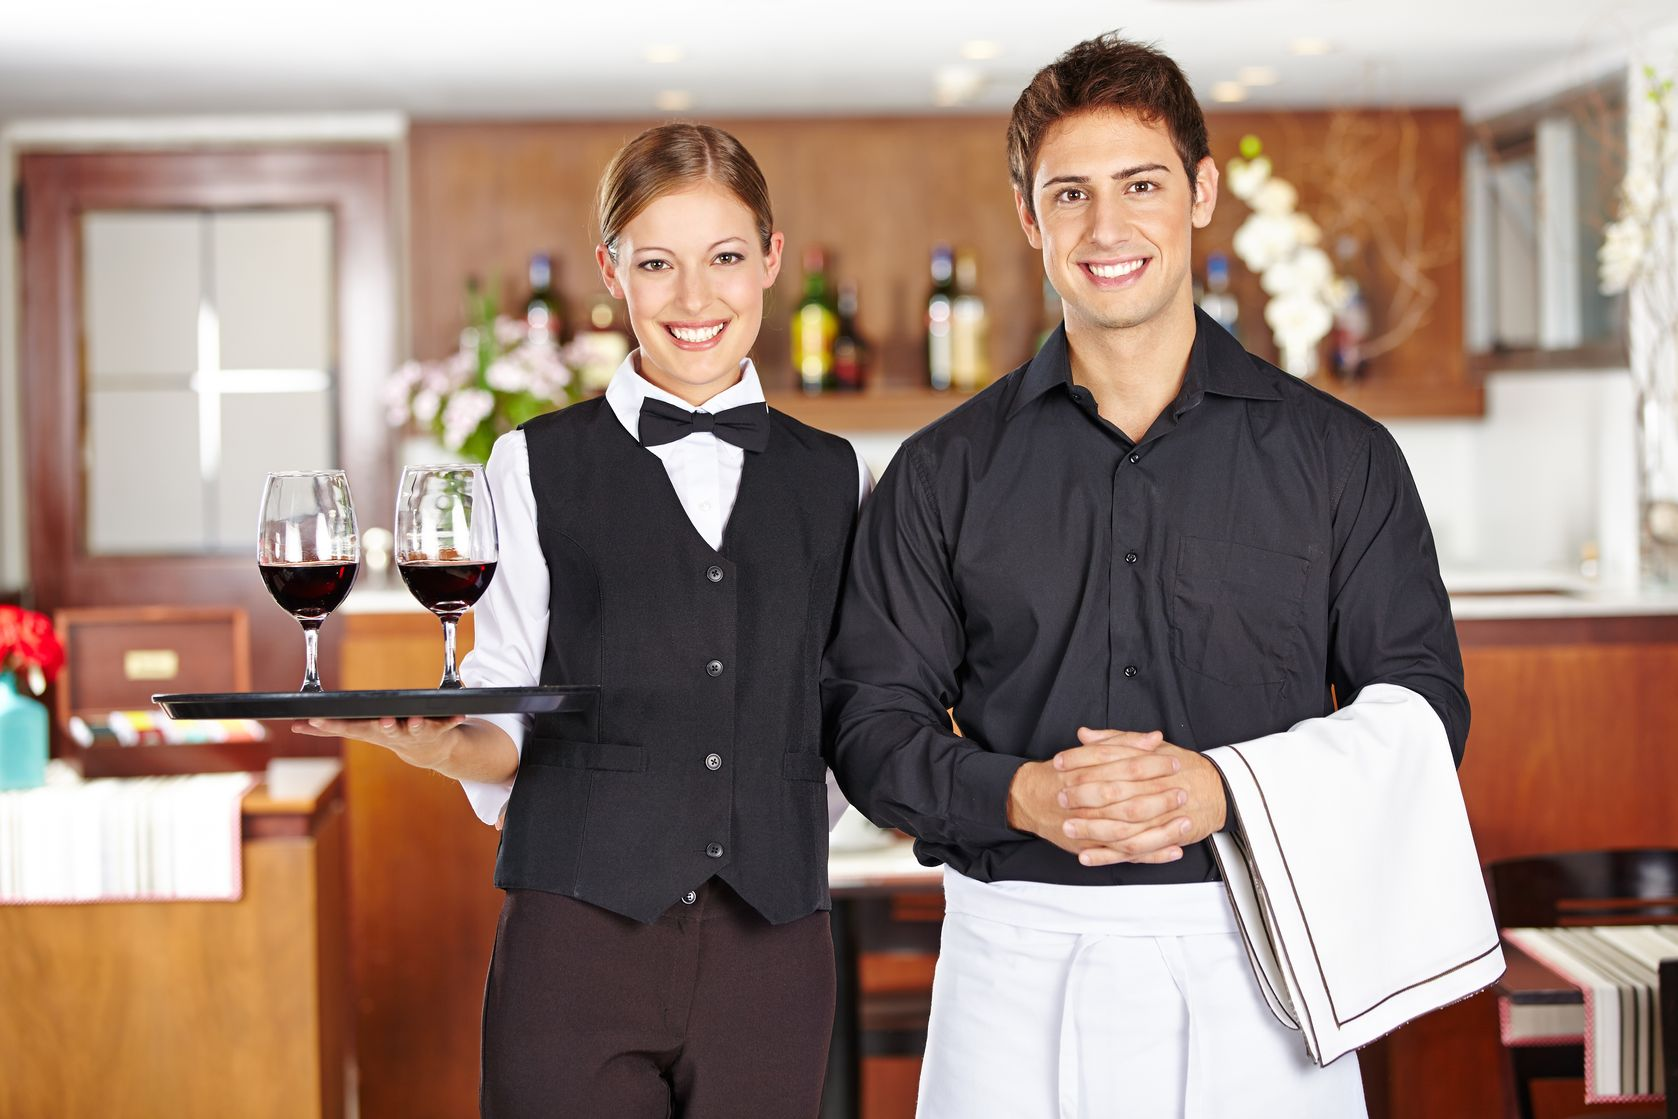 hospitality-and-catering-business-for-sale-in-brisbane-0